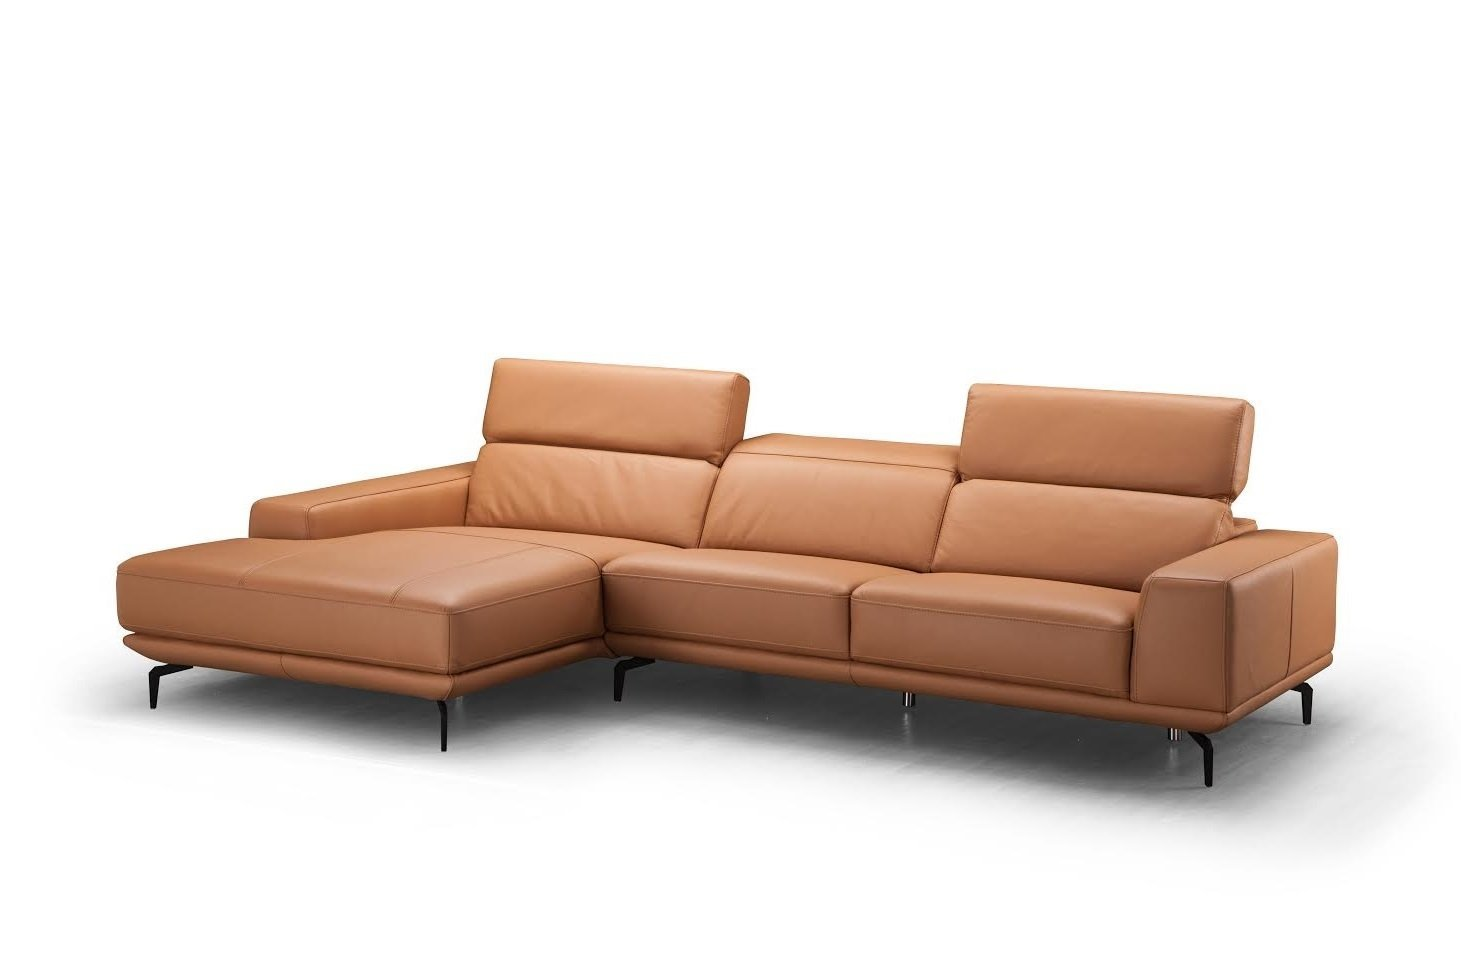 J and M Furniture 1790891-LHFC Lima Lhf Chaise Premium Leather Sectional